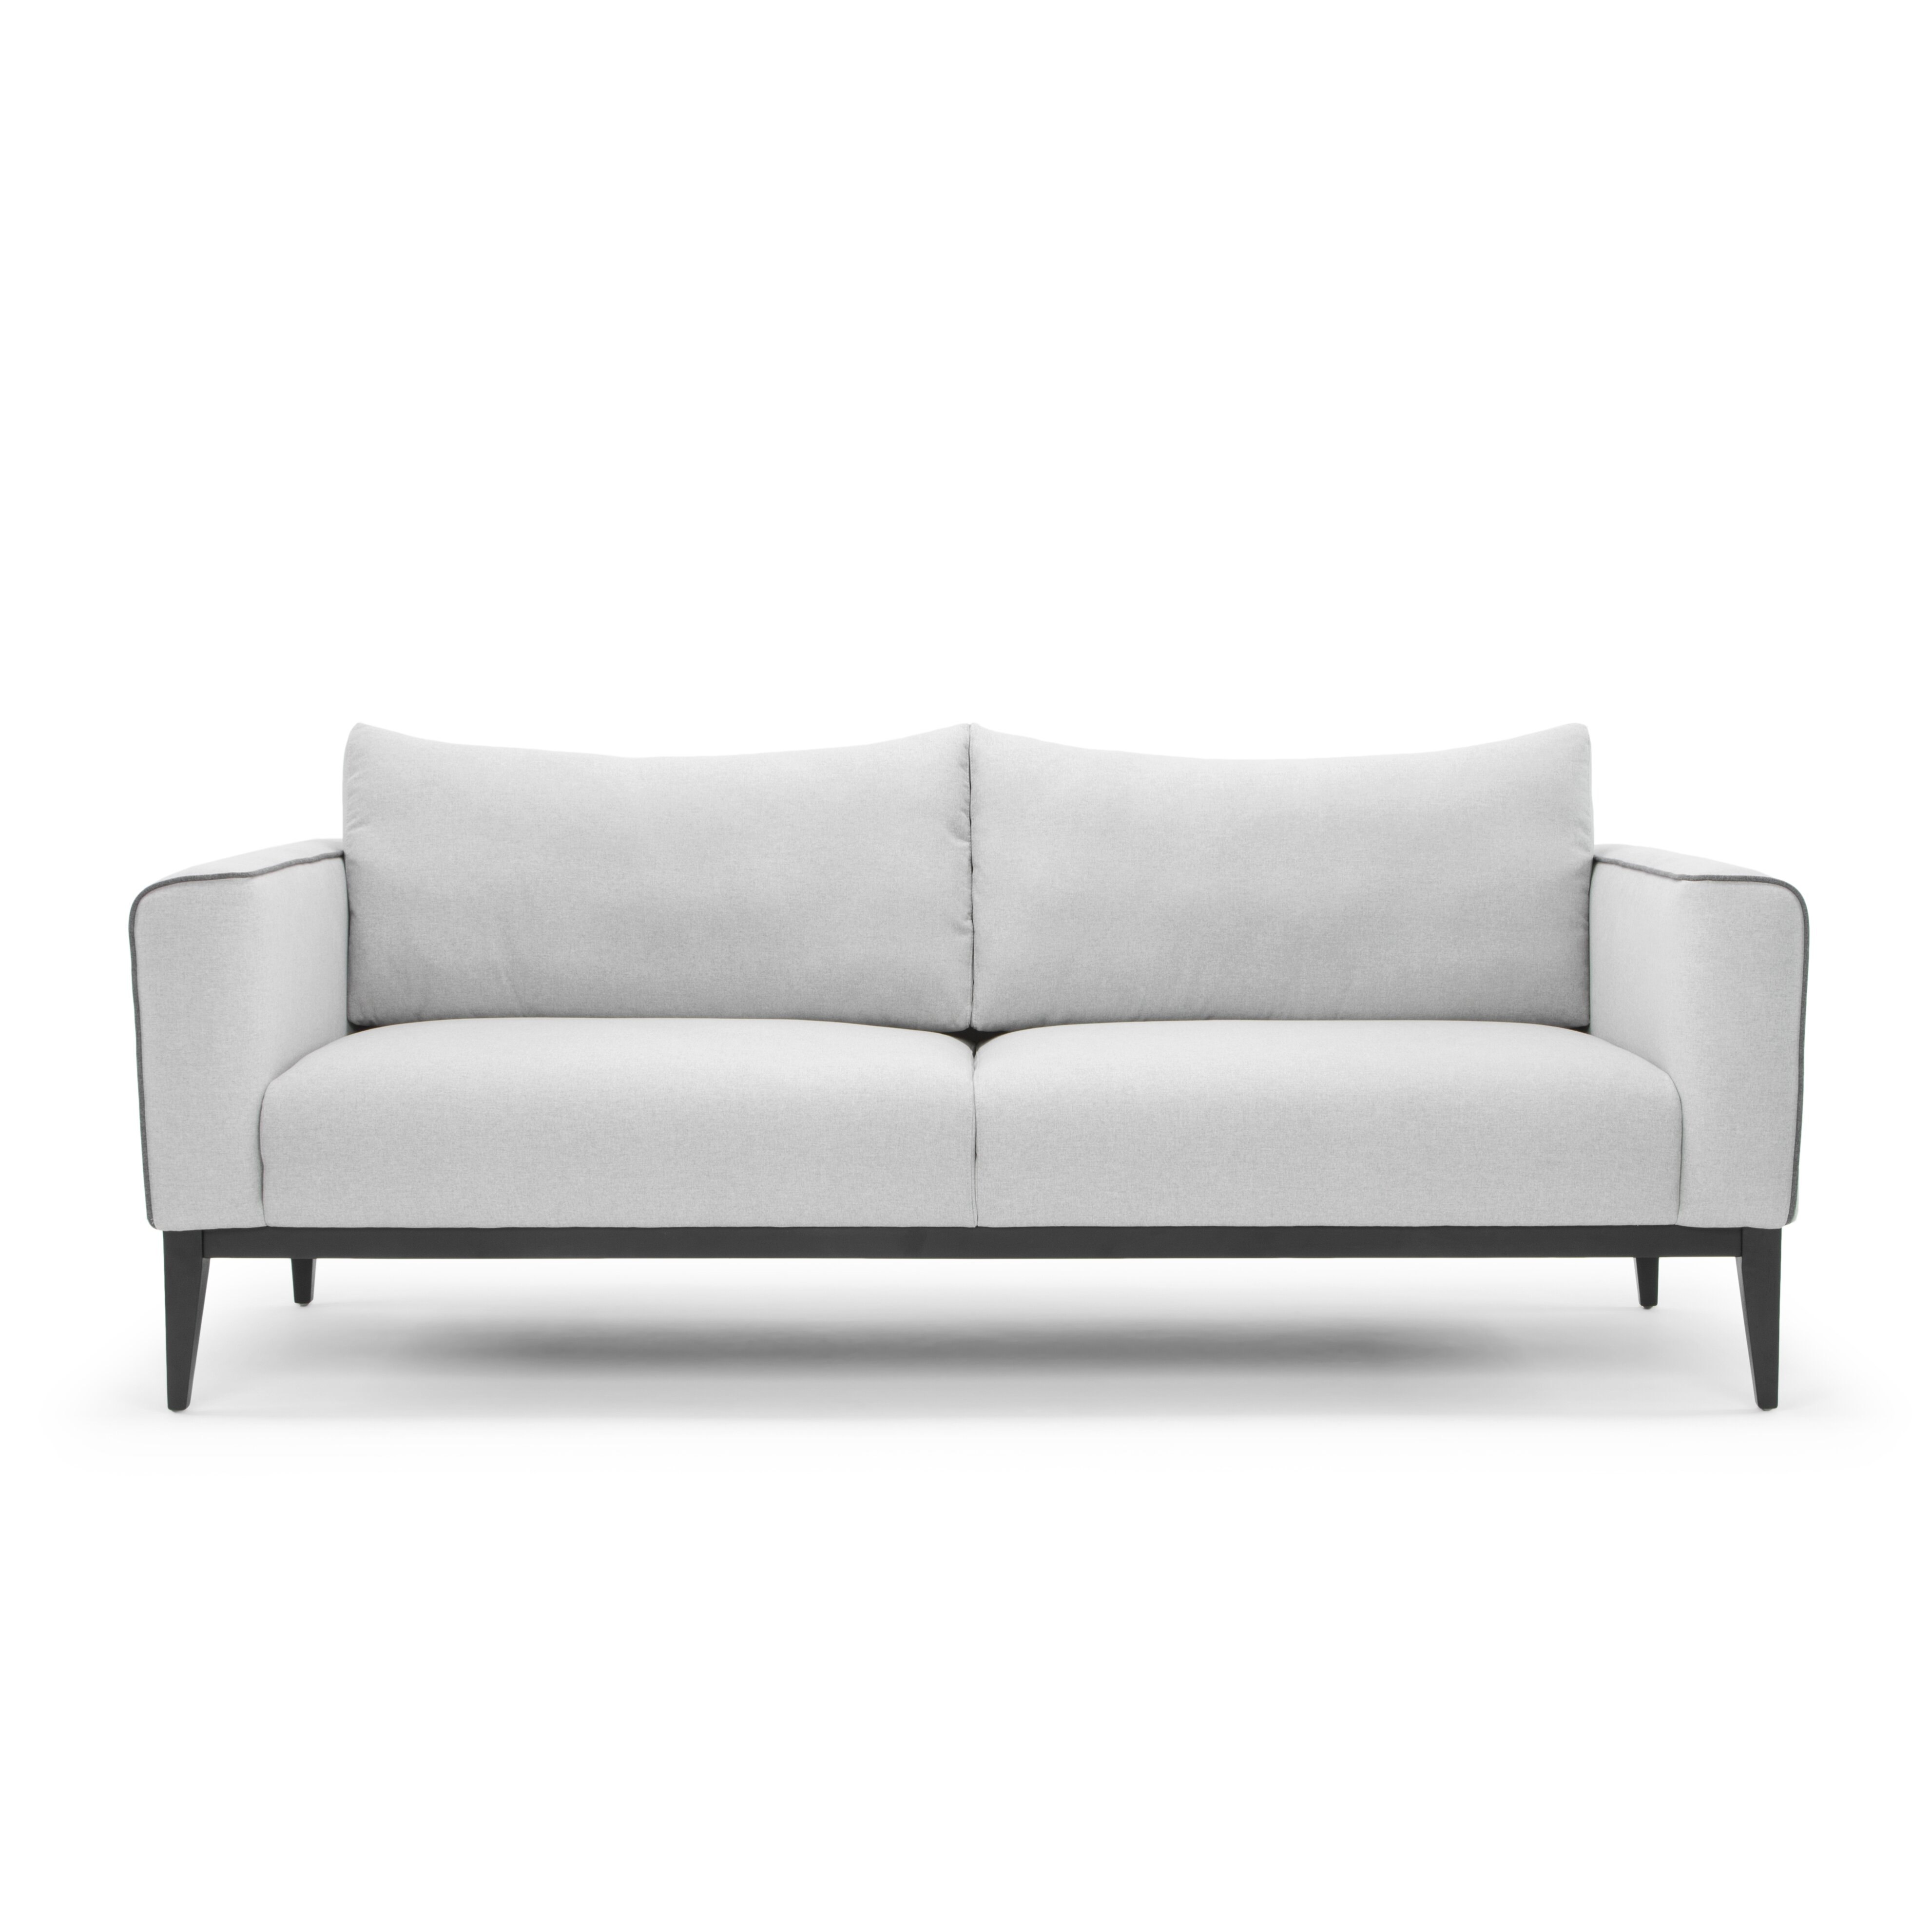 All Modern Sofa All Modern Sofa Beds Hpricot TheSofa